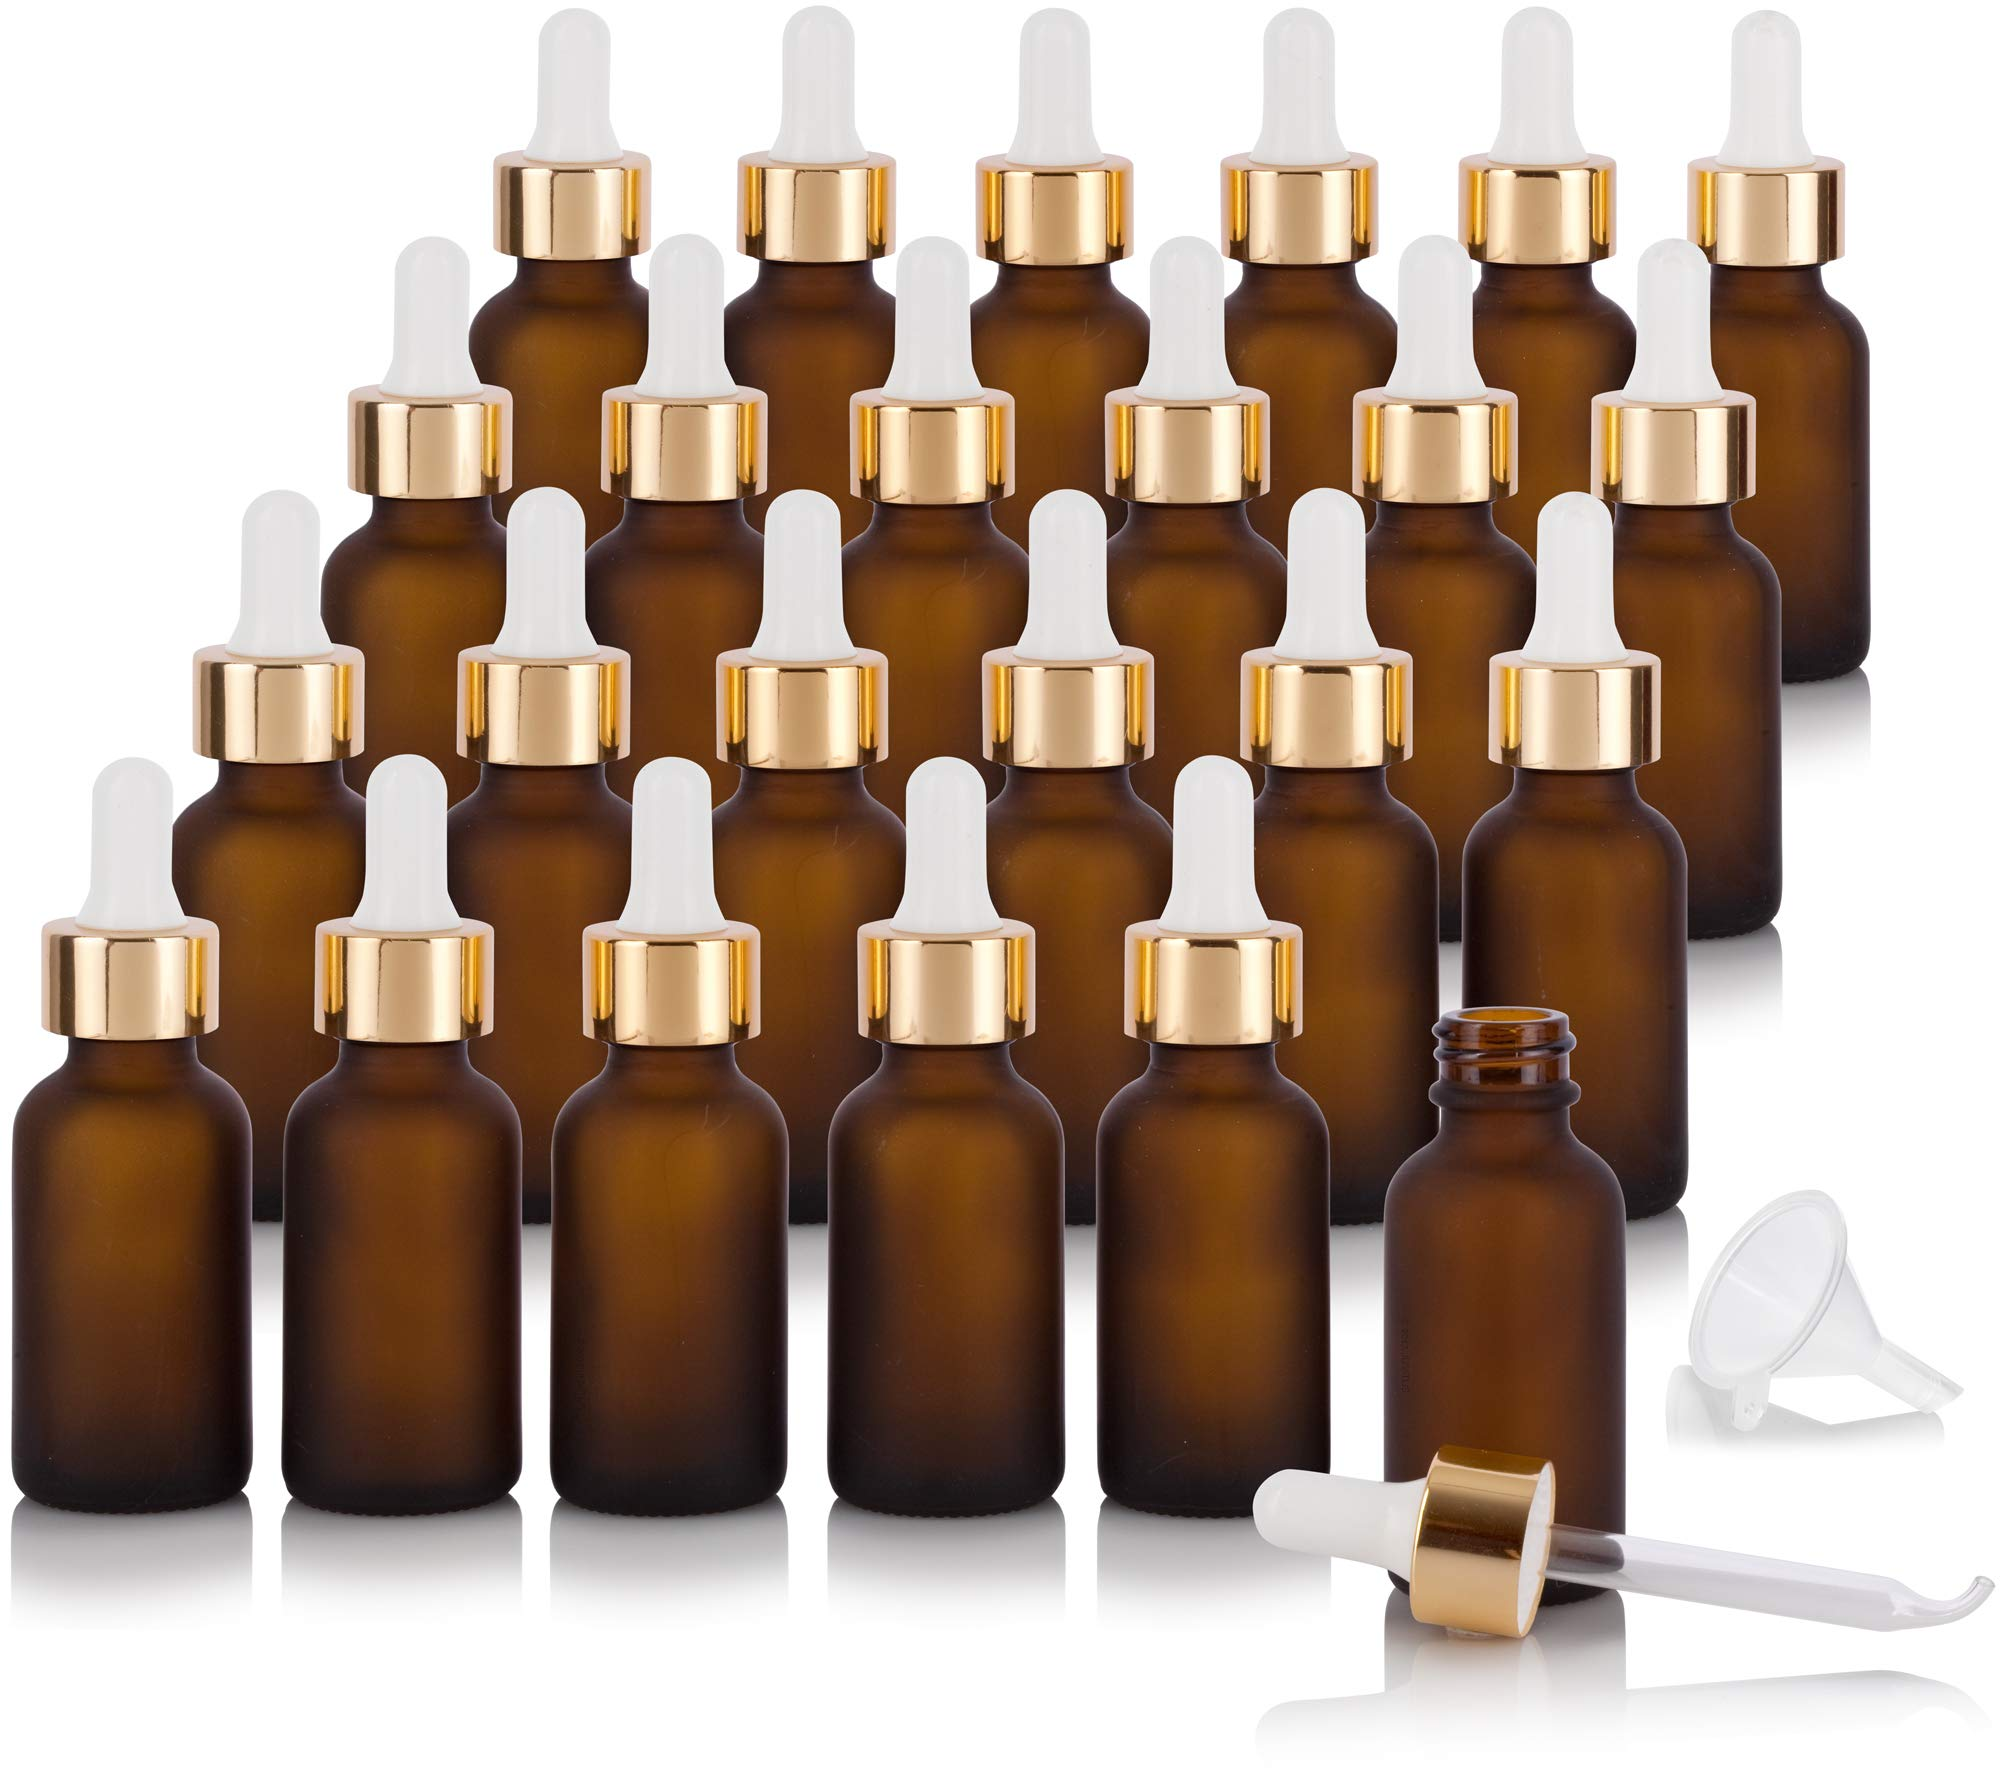 1 oz / 30 ml Frosted Amber Glass Boston Round Bottle with Luxury Gold Metal and Glass Dropper (24 pack) + Funnel for Essential oils, Aromatherapy, E-liquid, Food grade, BPA free by JUVITUS